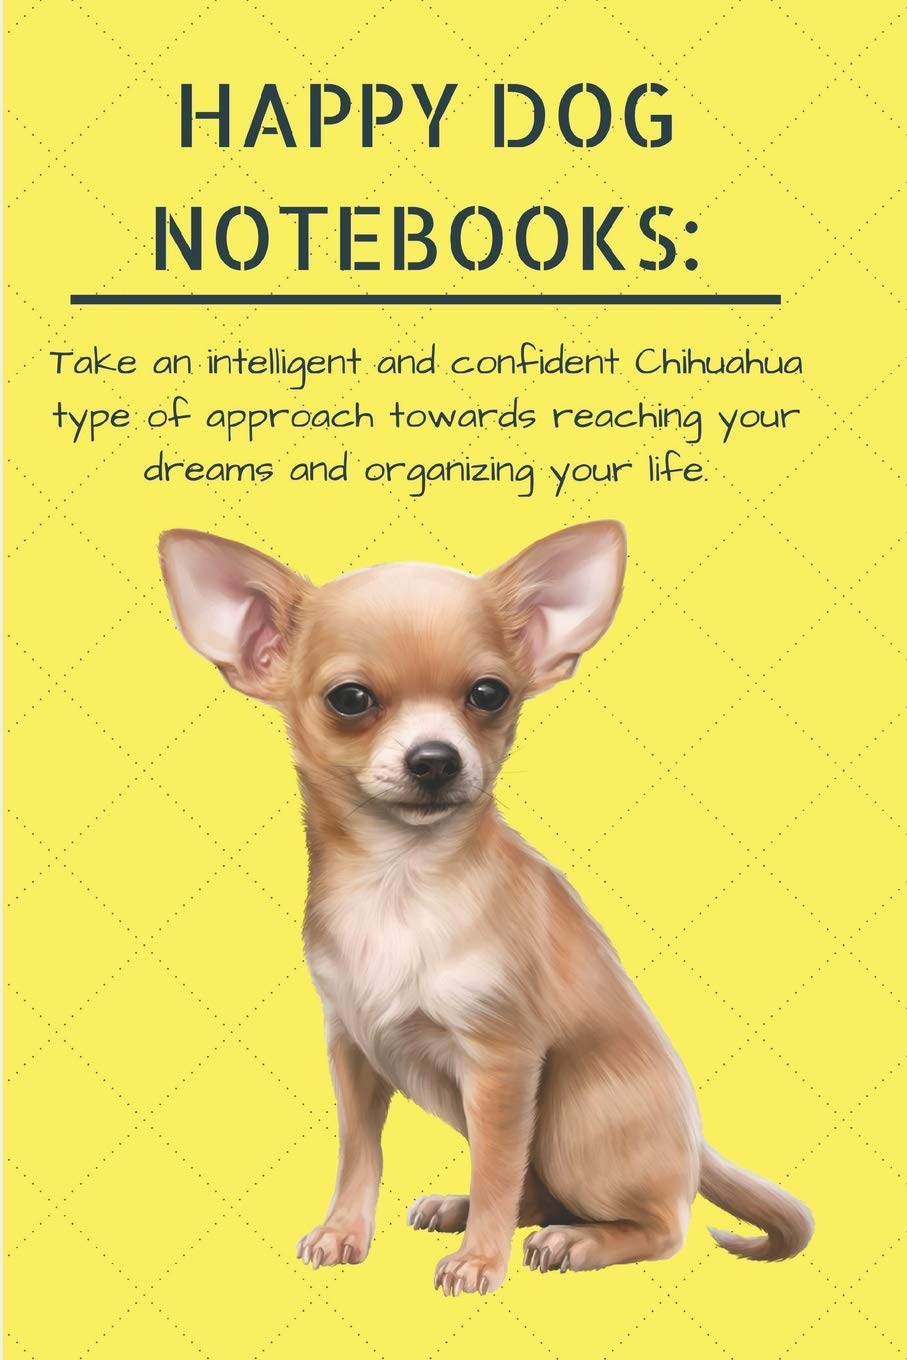 Buy Happy Dog Notebooks Take An Intelligent And Confident Chihuahua Type Of Approach Towards Reaching Your Dreams And Organizing Your Life Cute Puppy 120 Page Lined 6 X 9 In 15 2 X